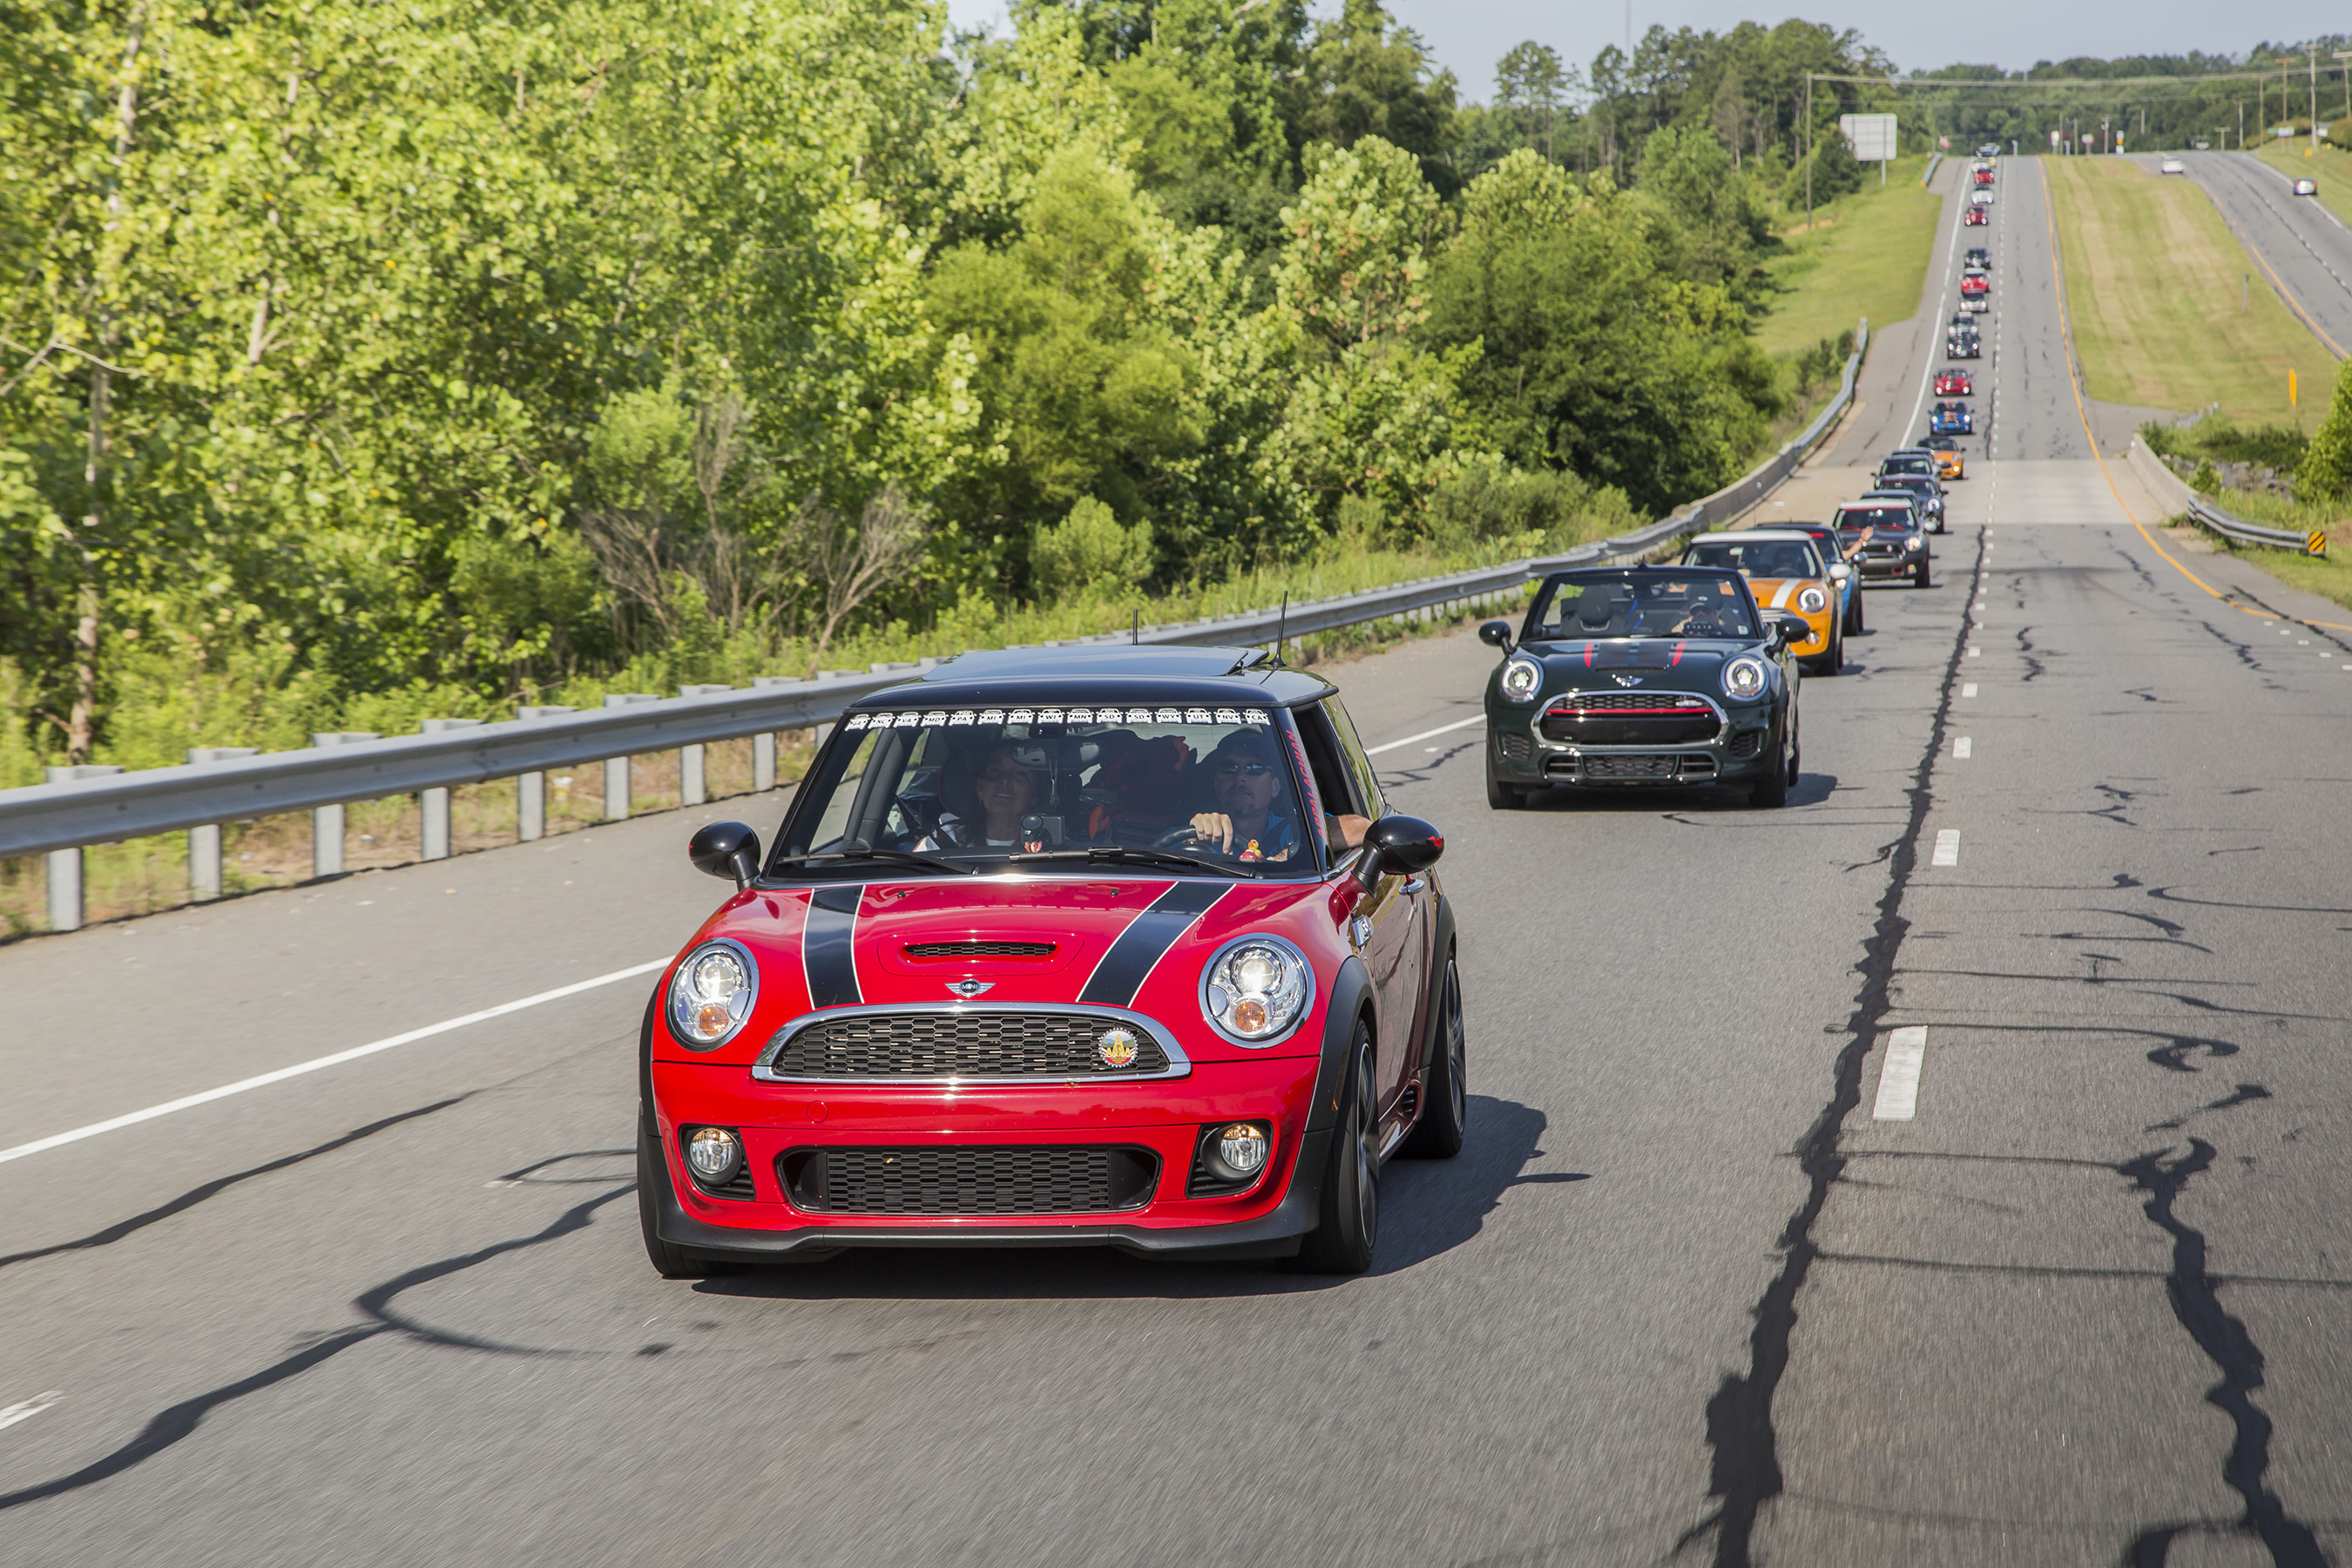 MINI TAKES THE STATES 2016 MOTORS ALONG AT 575 MILES AND COUNTING. Courtesy of MINI USA via Mike Shaffer.